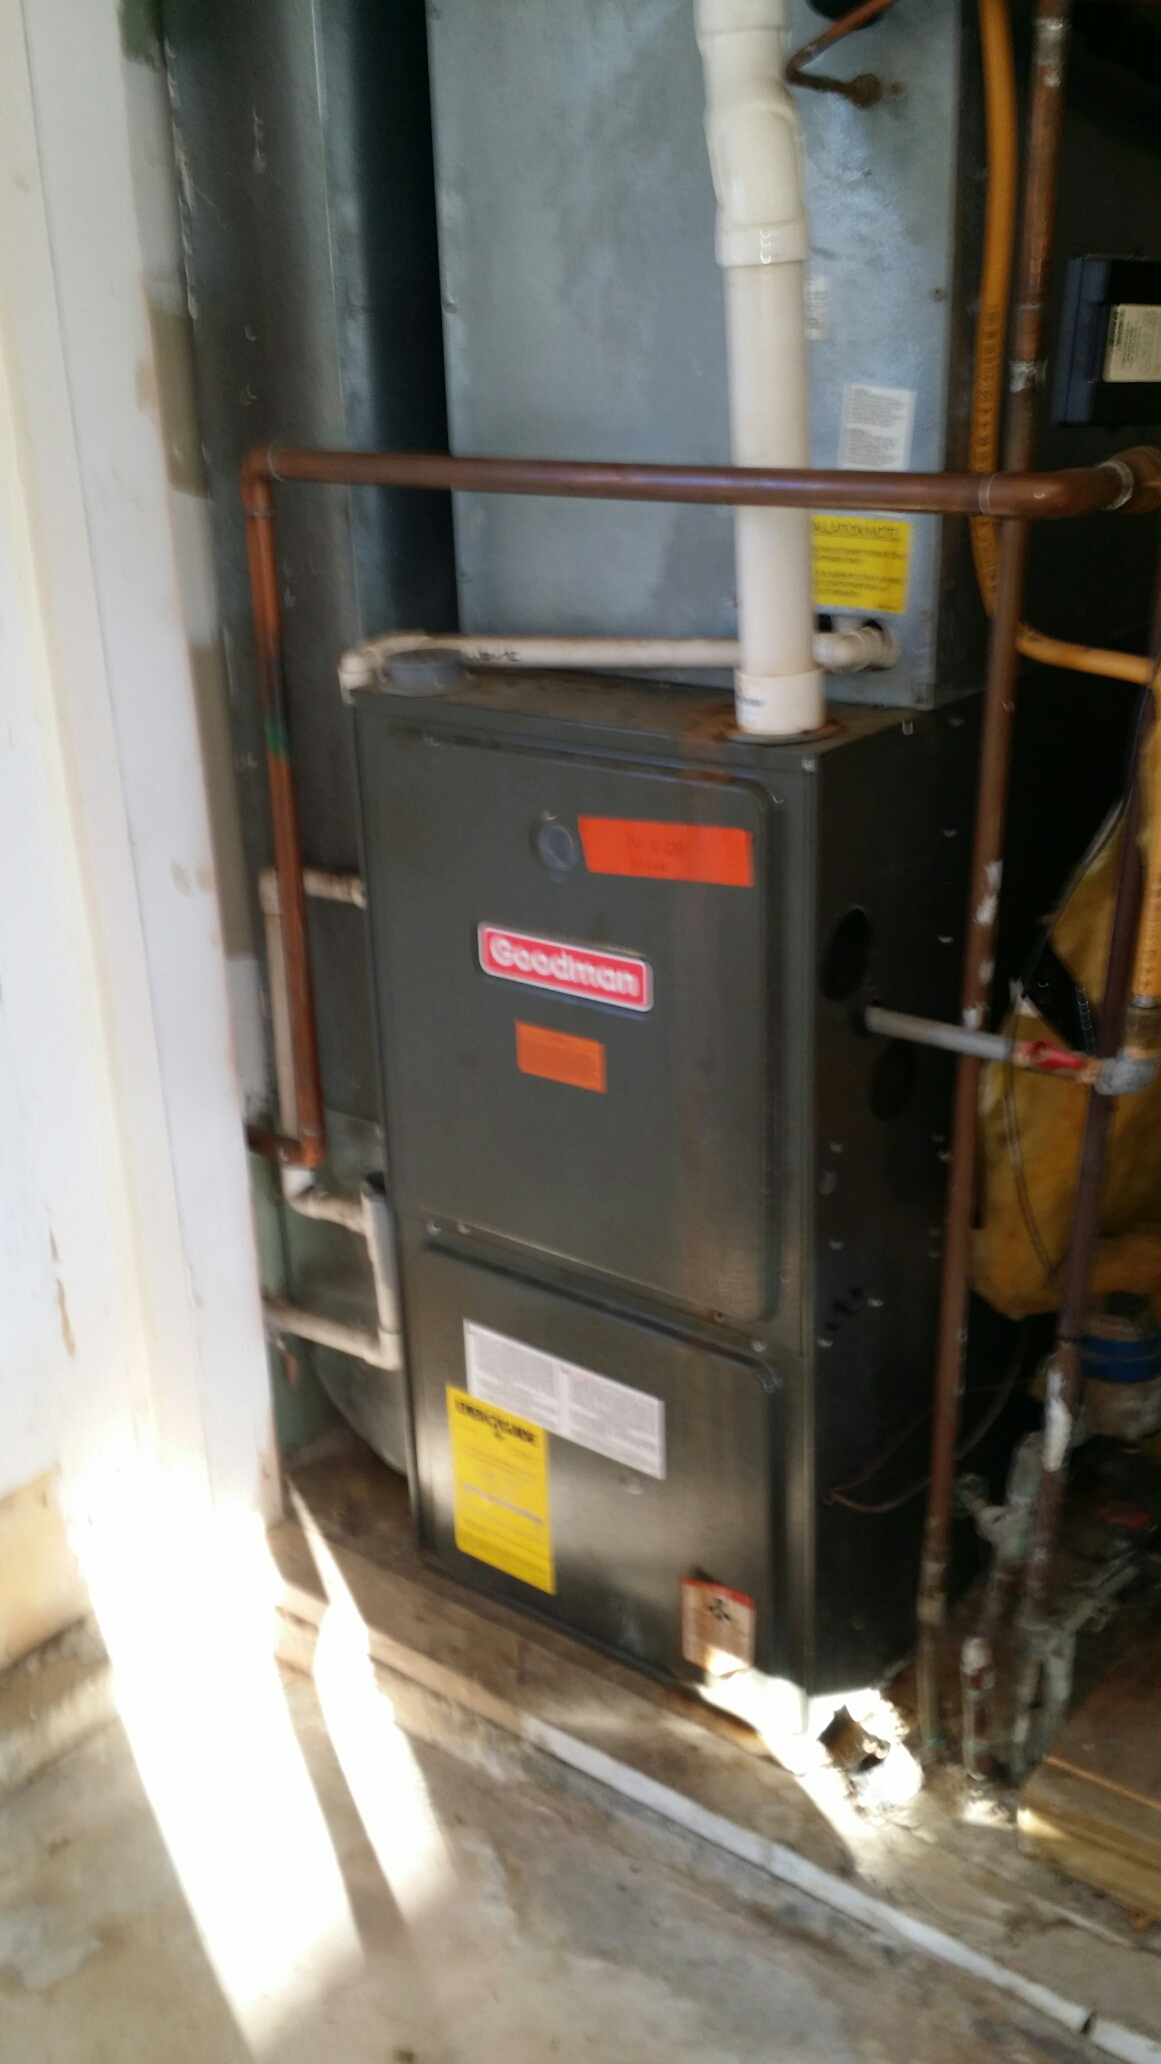 Repair call Goodman high efficiency gas furnace not working. Fault with exhaust removal system